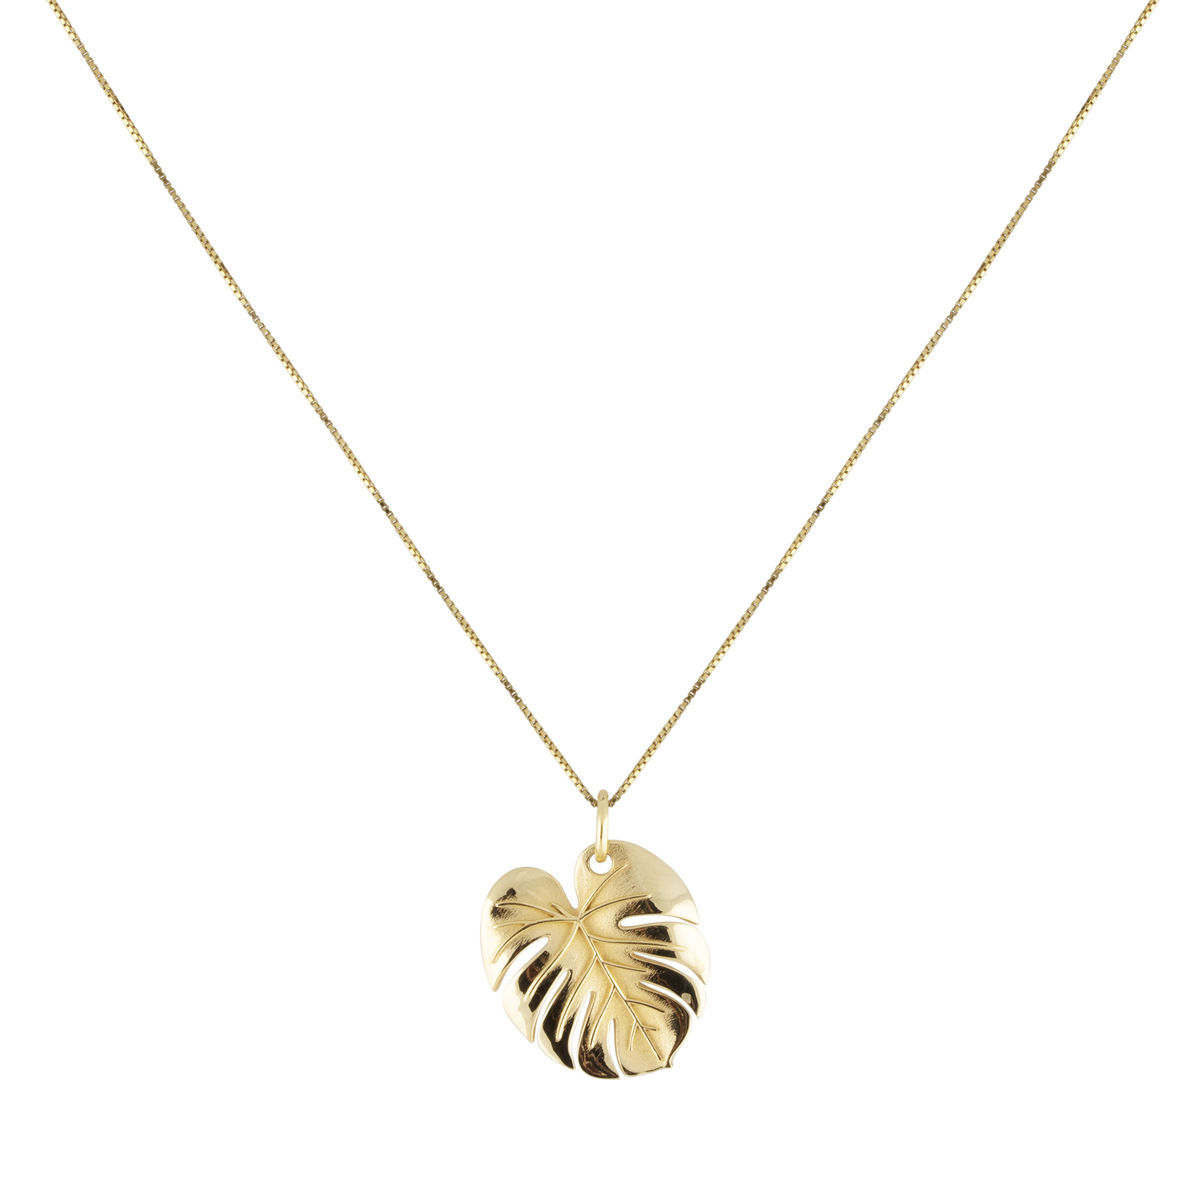 Palm leaf necklace gold in the group SHOP / NECKLACES at EMMA ISRAELSSON (neck102)